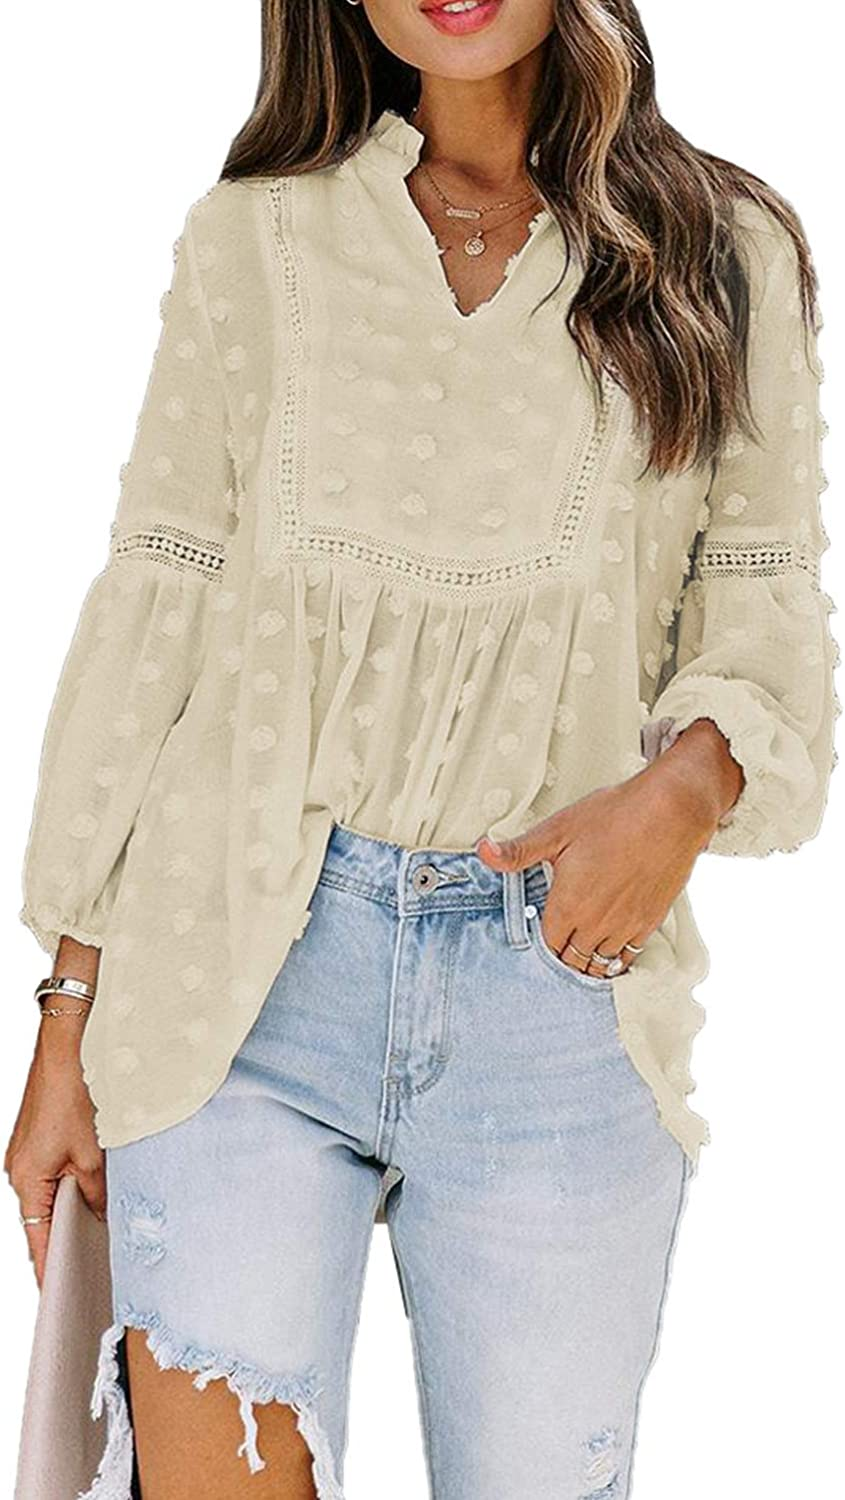 Biucly Women Summer Casual V Neckline Loose Tops Blouses Shirt